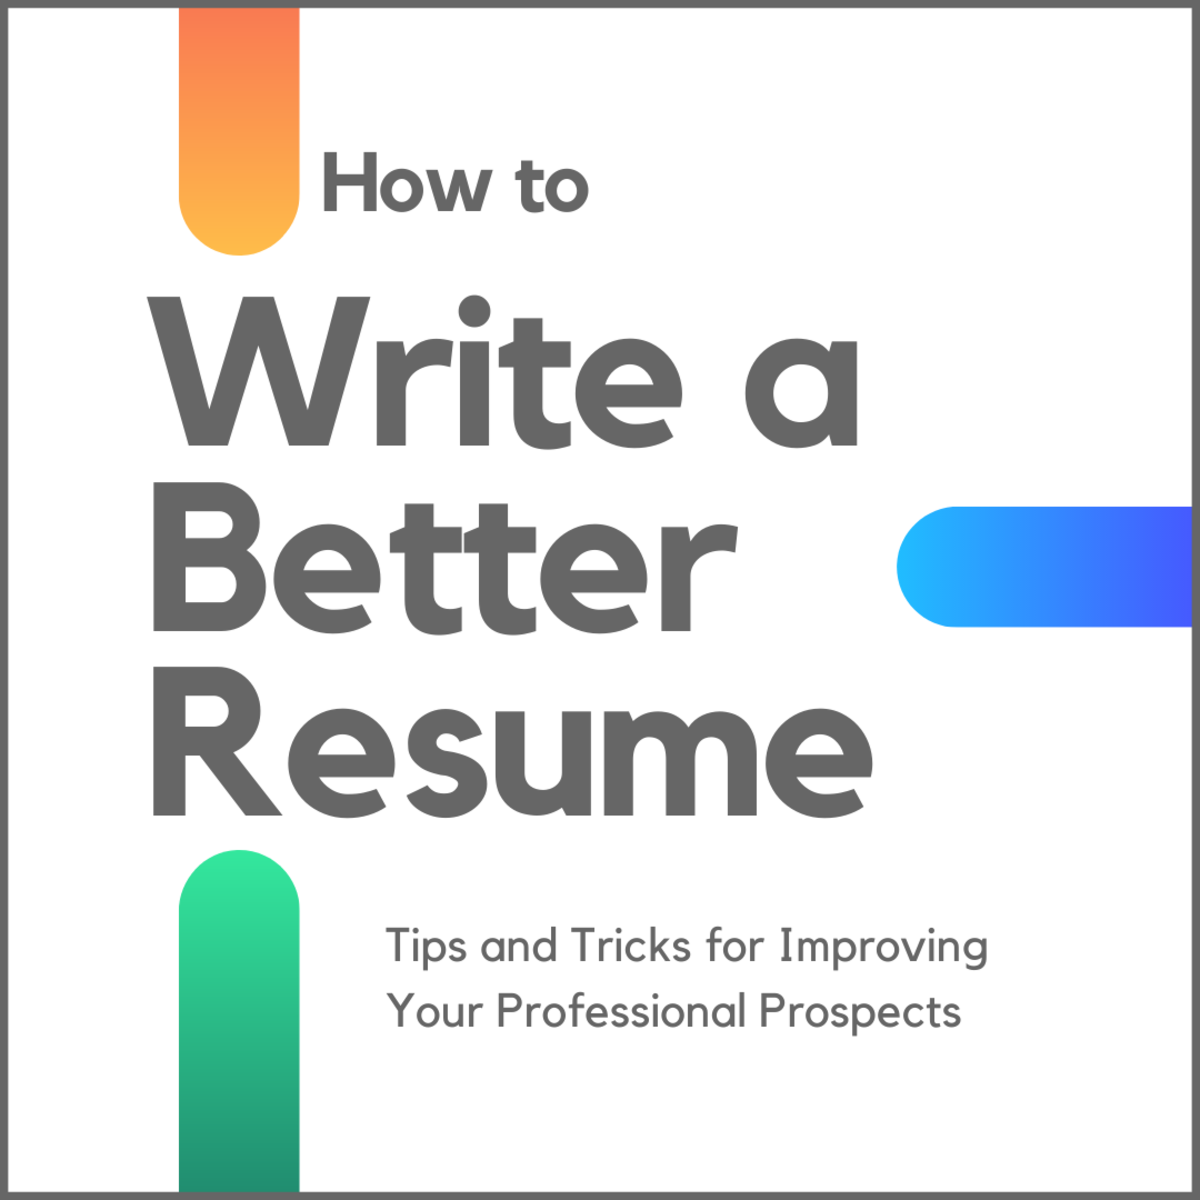 We hope these tips and tricks will help you with your job search.